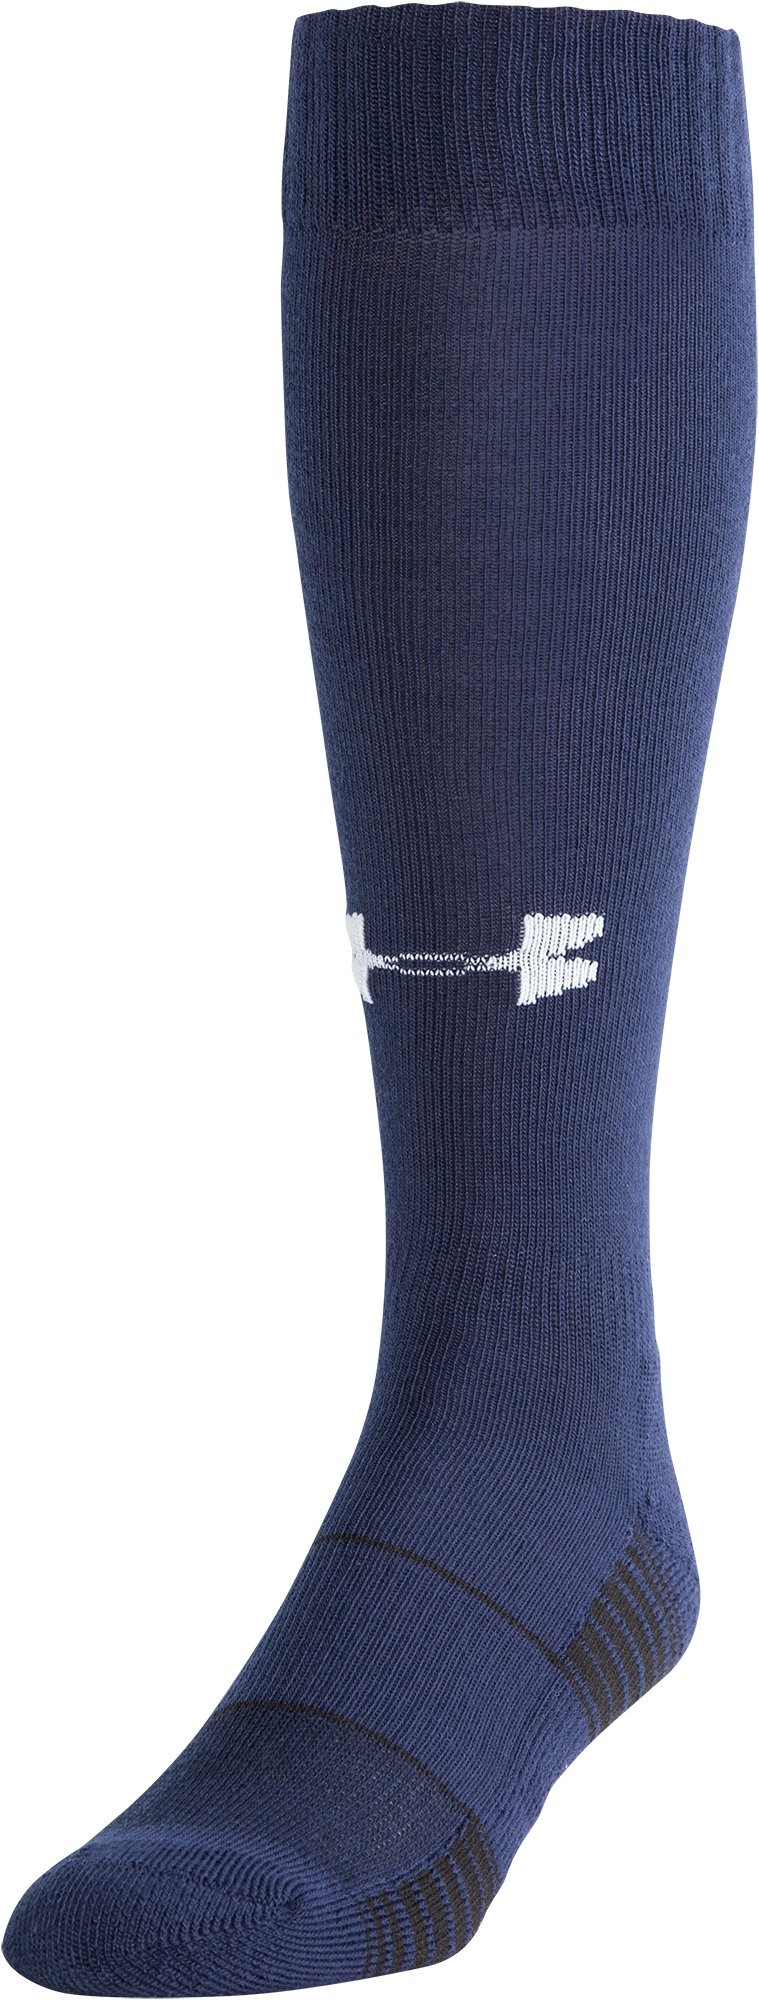 UA Over-The-Calf Team Socks, Midnight Navy